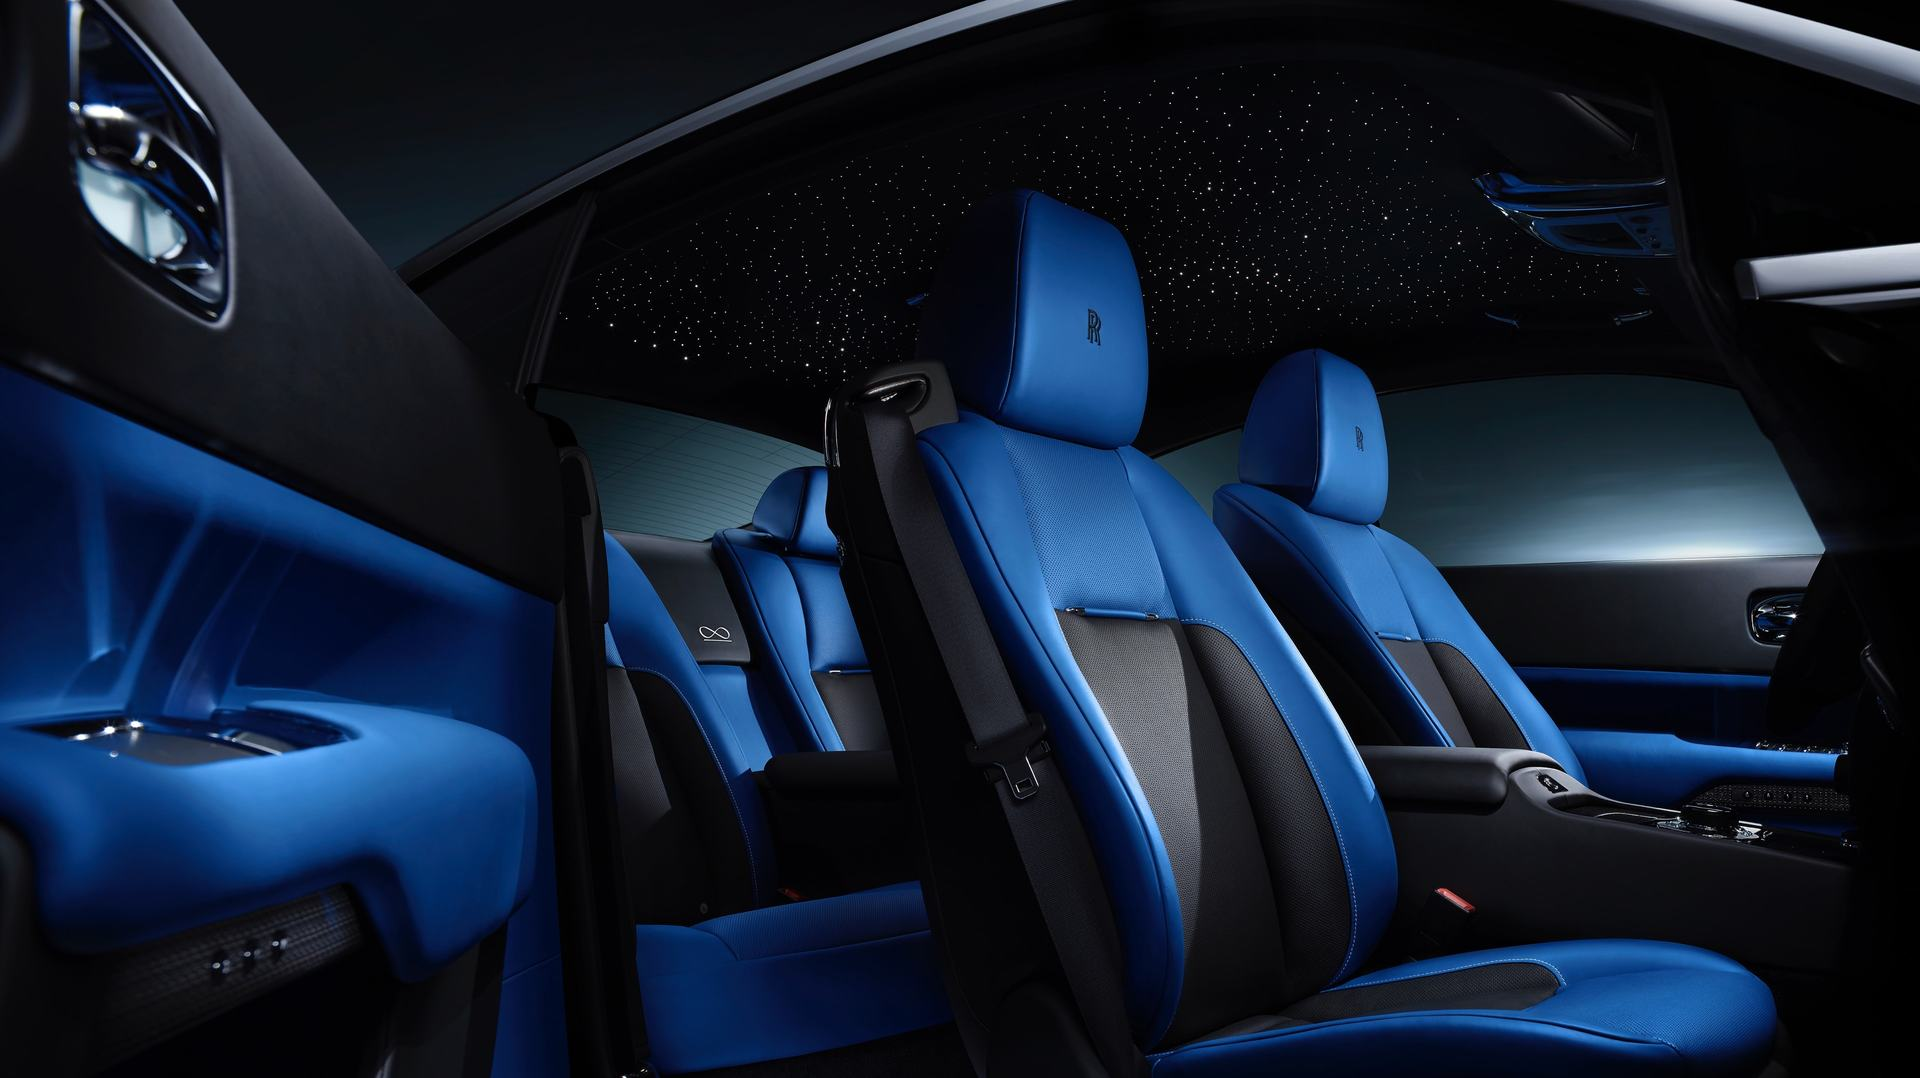 The blue seats and starlight headliner are shown in detail from the perspective of the drivers door being opened of a Rolls-Royce Black Badge Wraith.